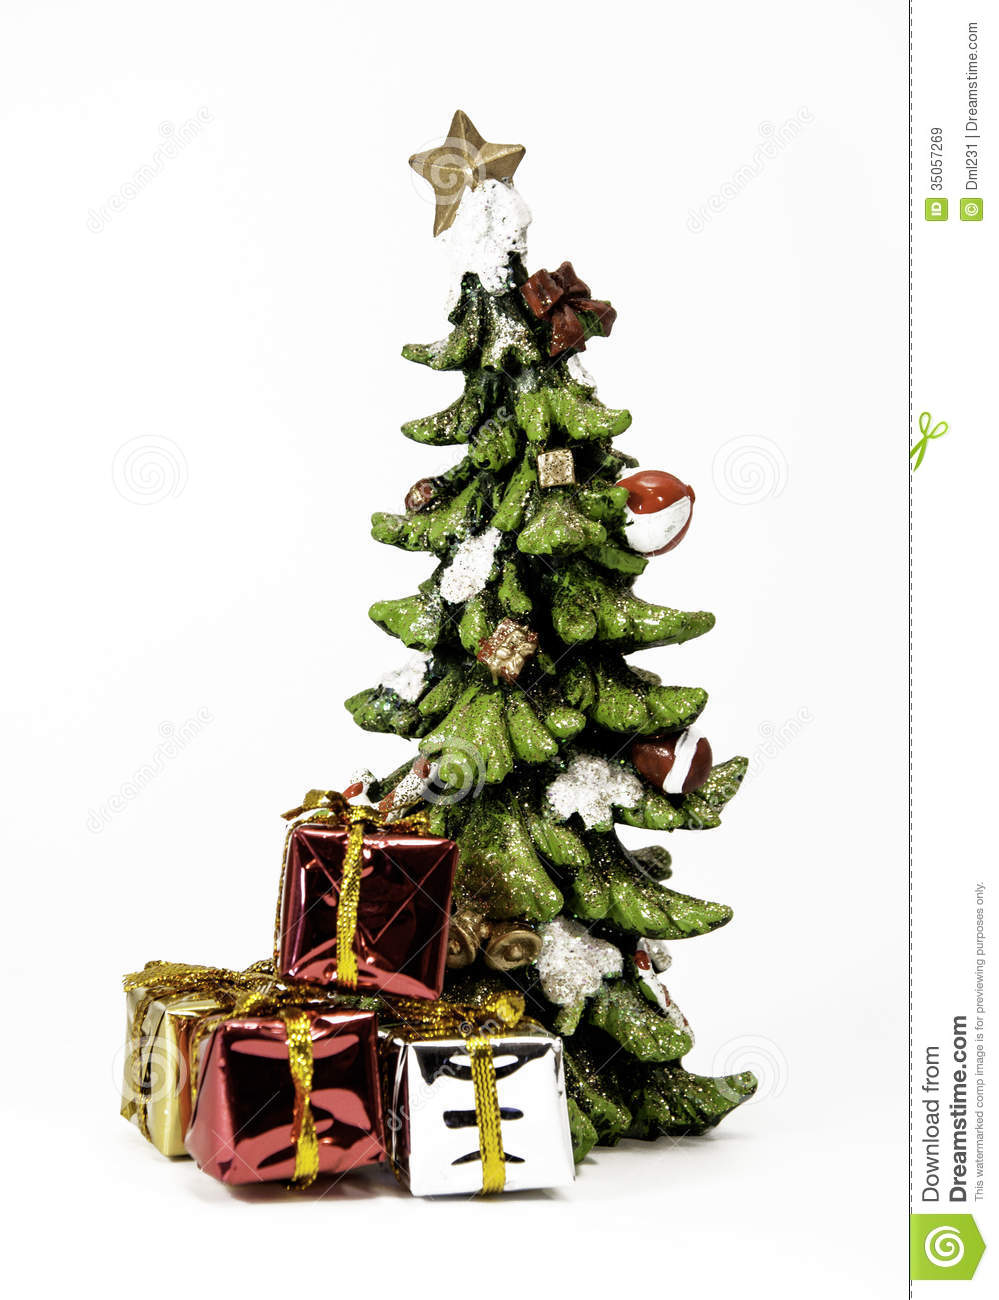 Ceramic Christmas Tree With Gifts Stock Image Image Of Gift